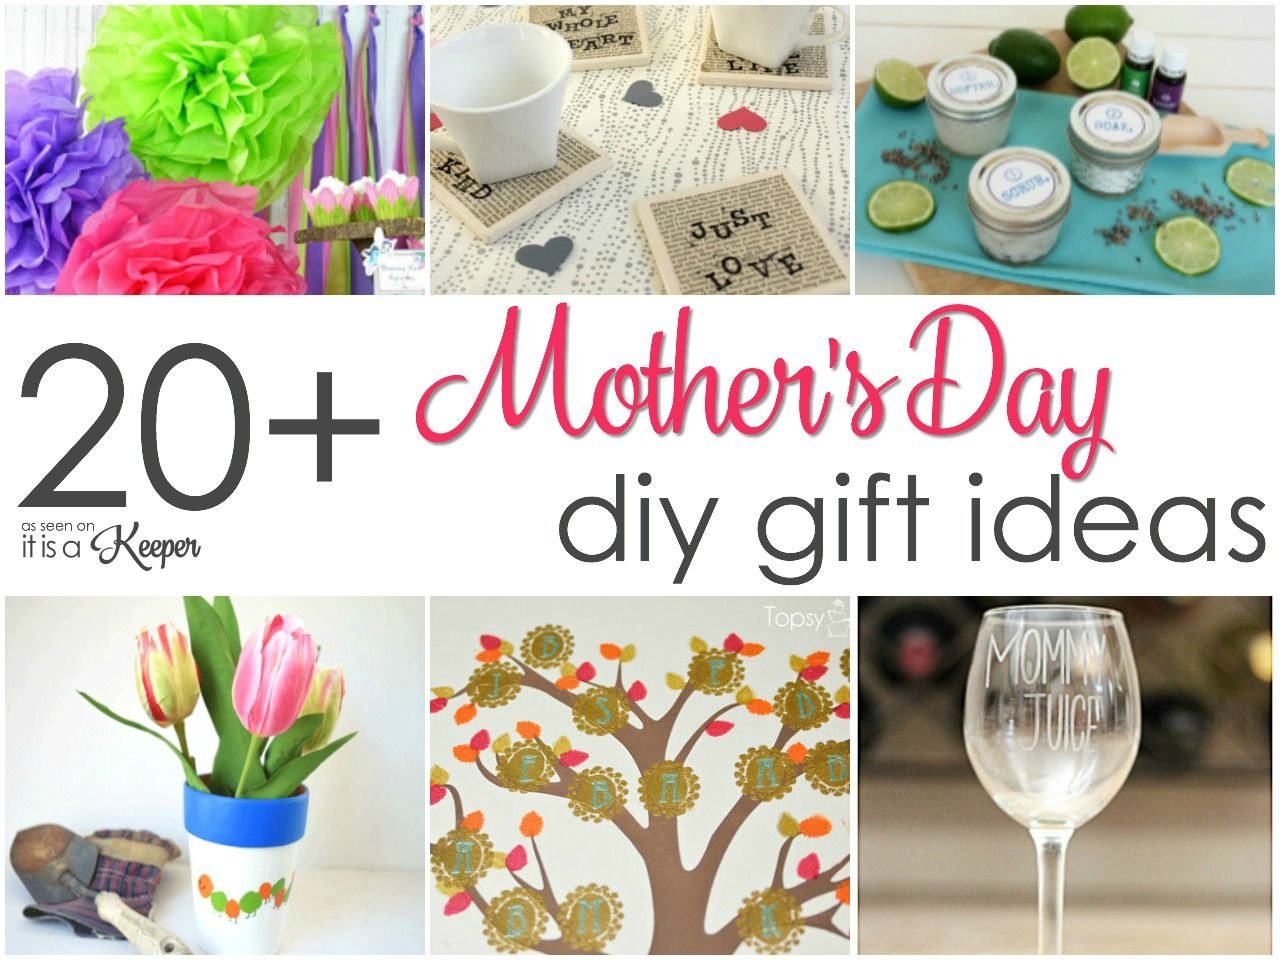 20 easy homemade mothers day gifts mothers day pinterest 20 easy homemade mothers day gifts negle Choice Image